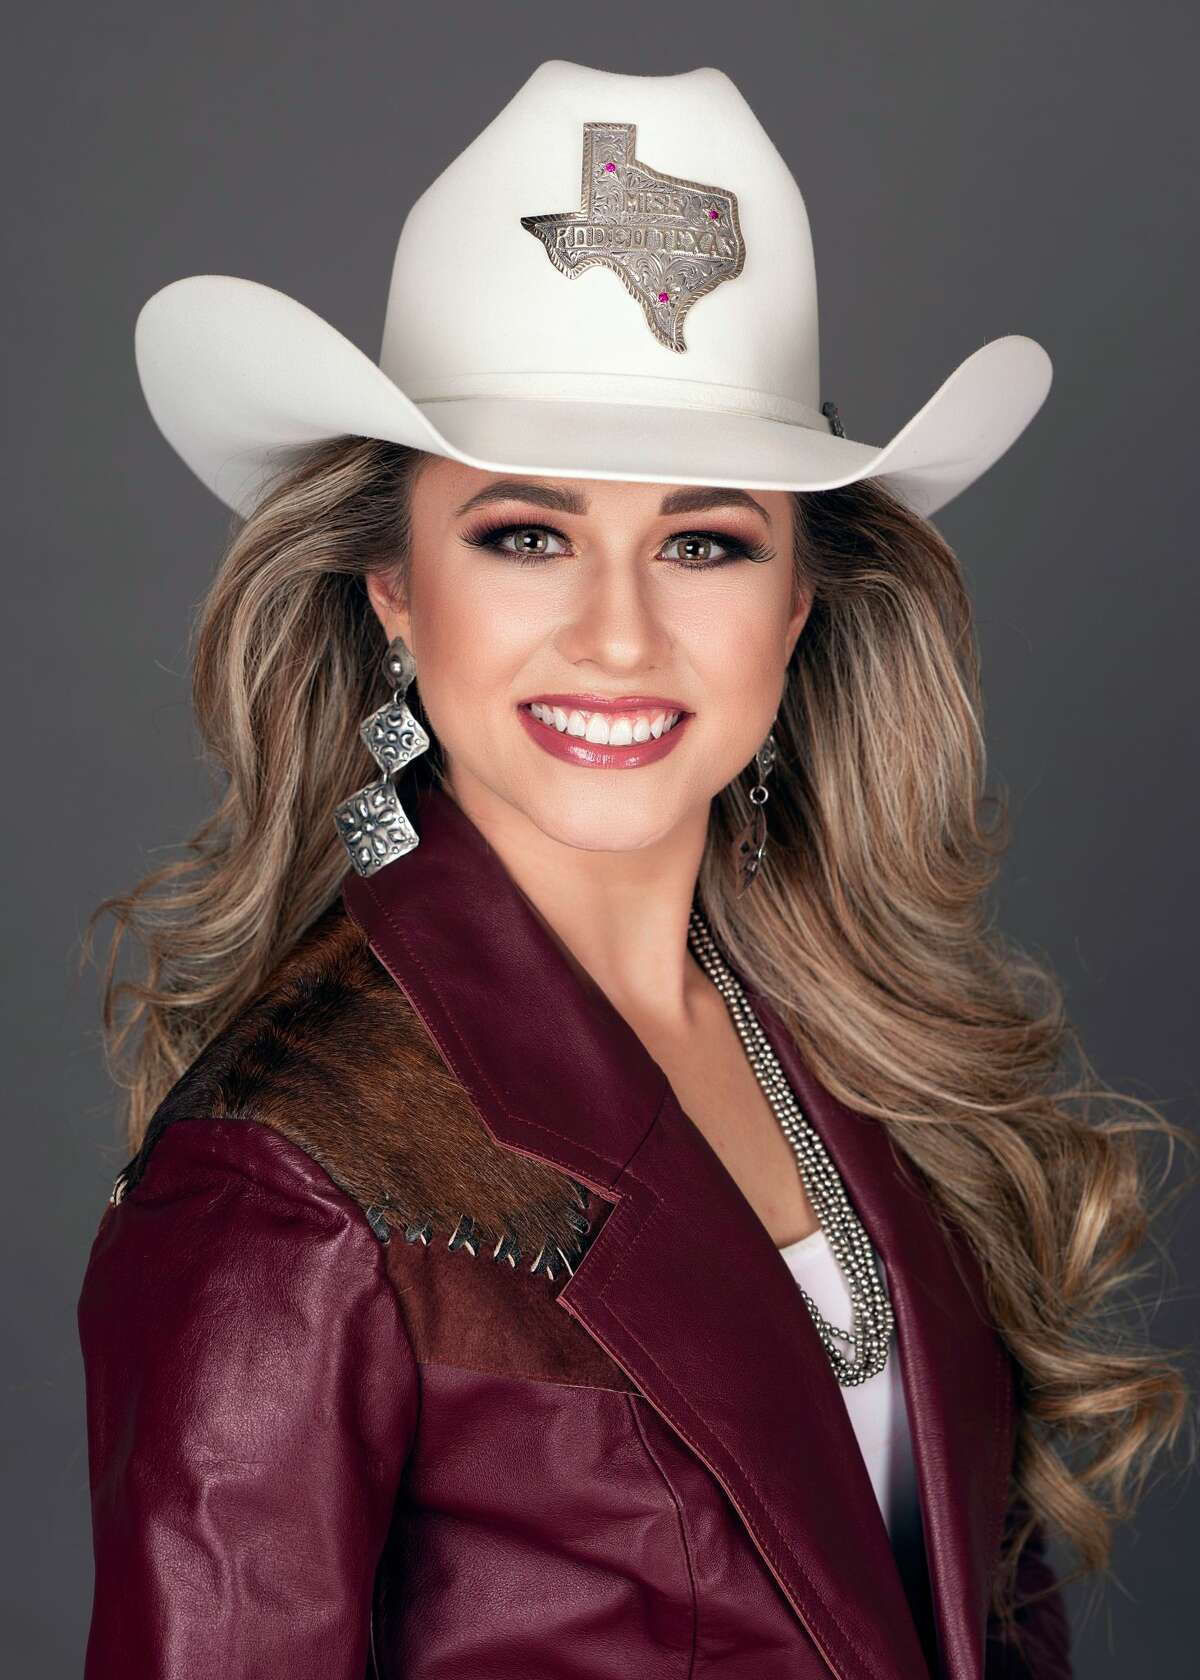 Jordan Maldonado, Miss Rodeo Texas 2019